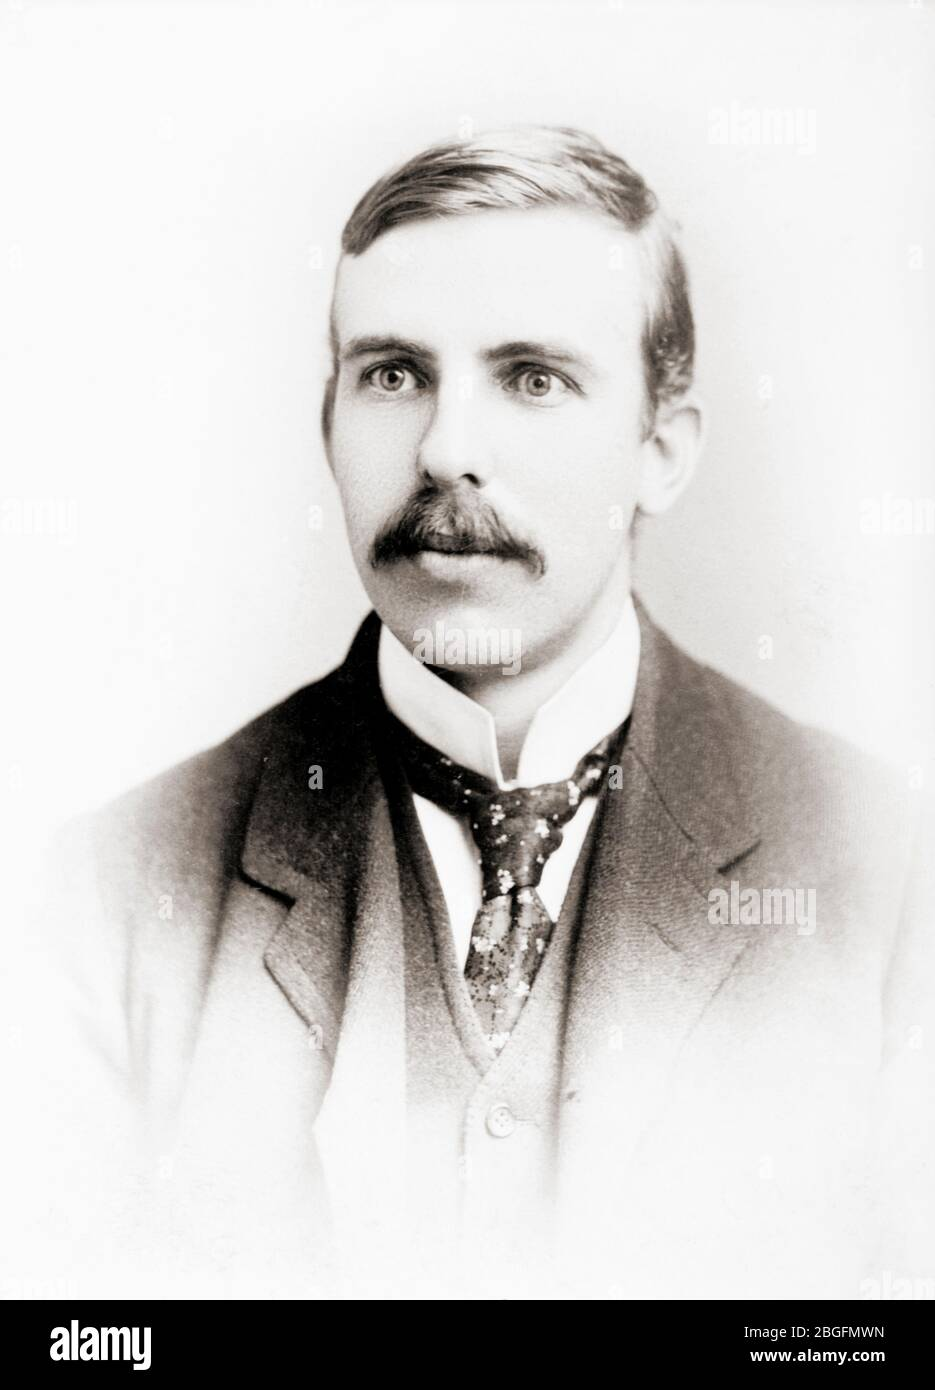 Ernest Rutherford, 1st Baron Rutherford of Nelson, 1871 - 1937.  New Zealand-born British physicist.  Recipient of Nobel Prize for Chemistry in 1908.  Known as Father of Nuclear Physics.  After a photograph published circa 1908. Stock Photo